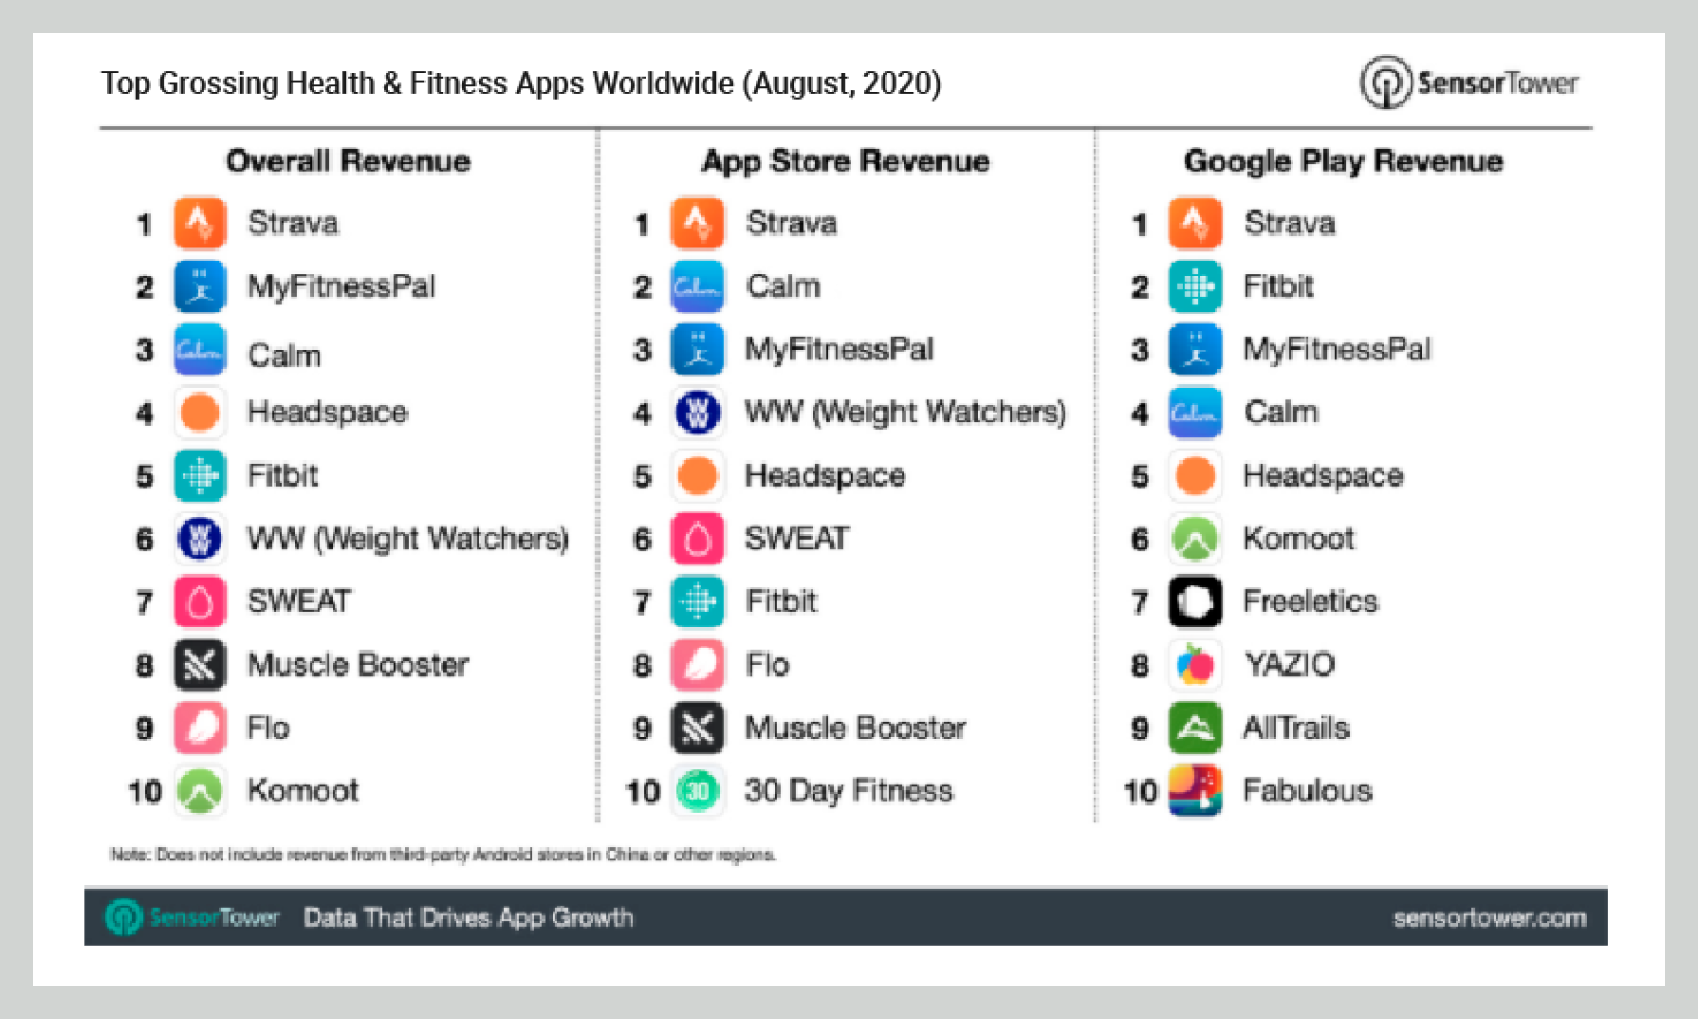 Top Grossing Health & Fitness Apps (2020)